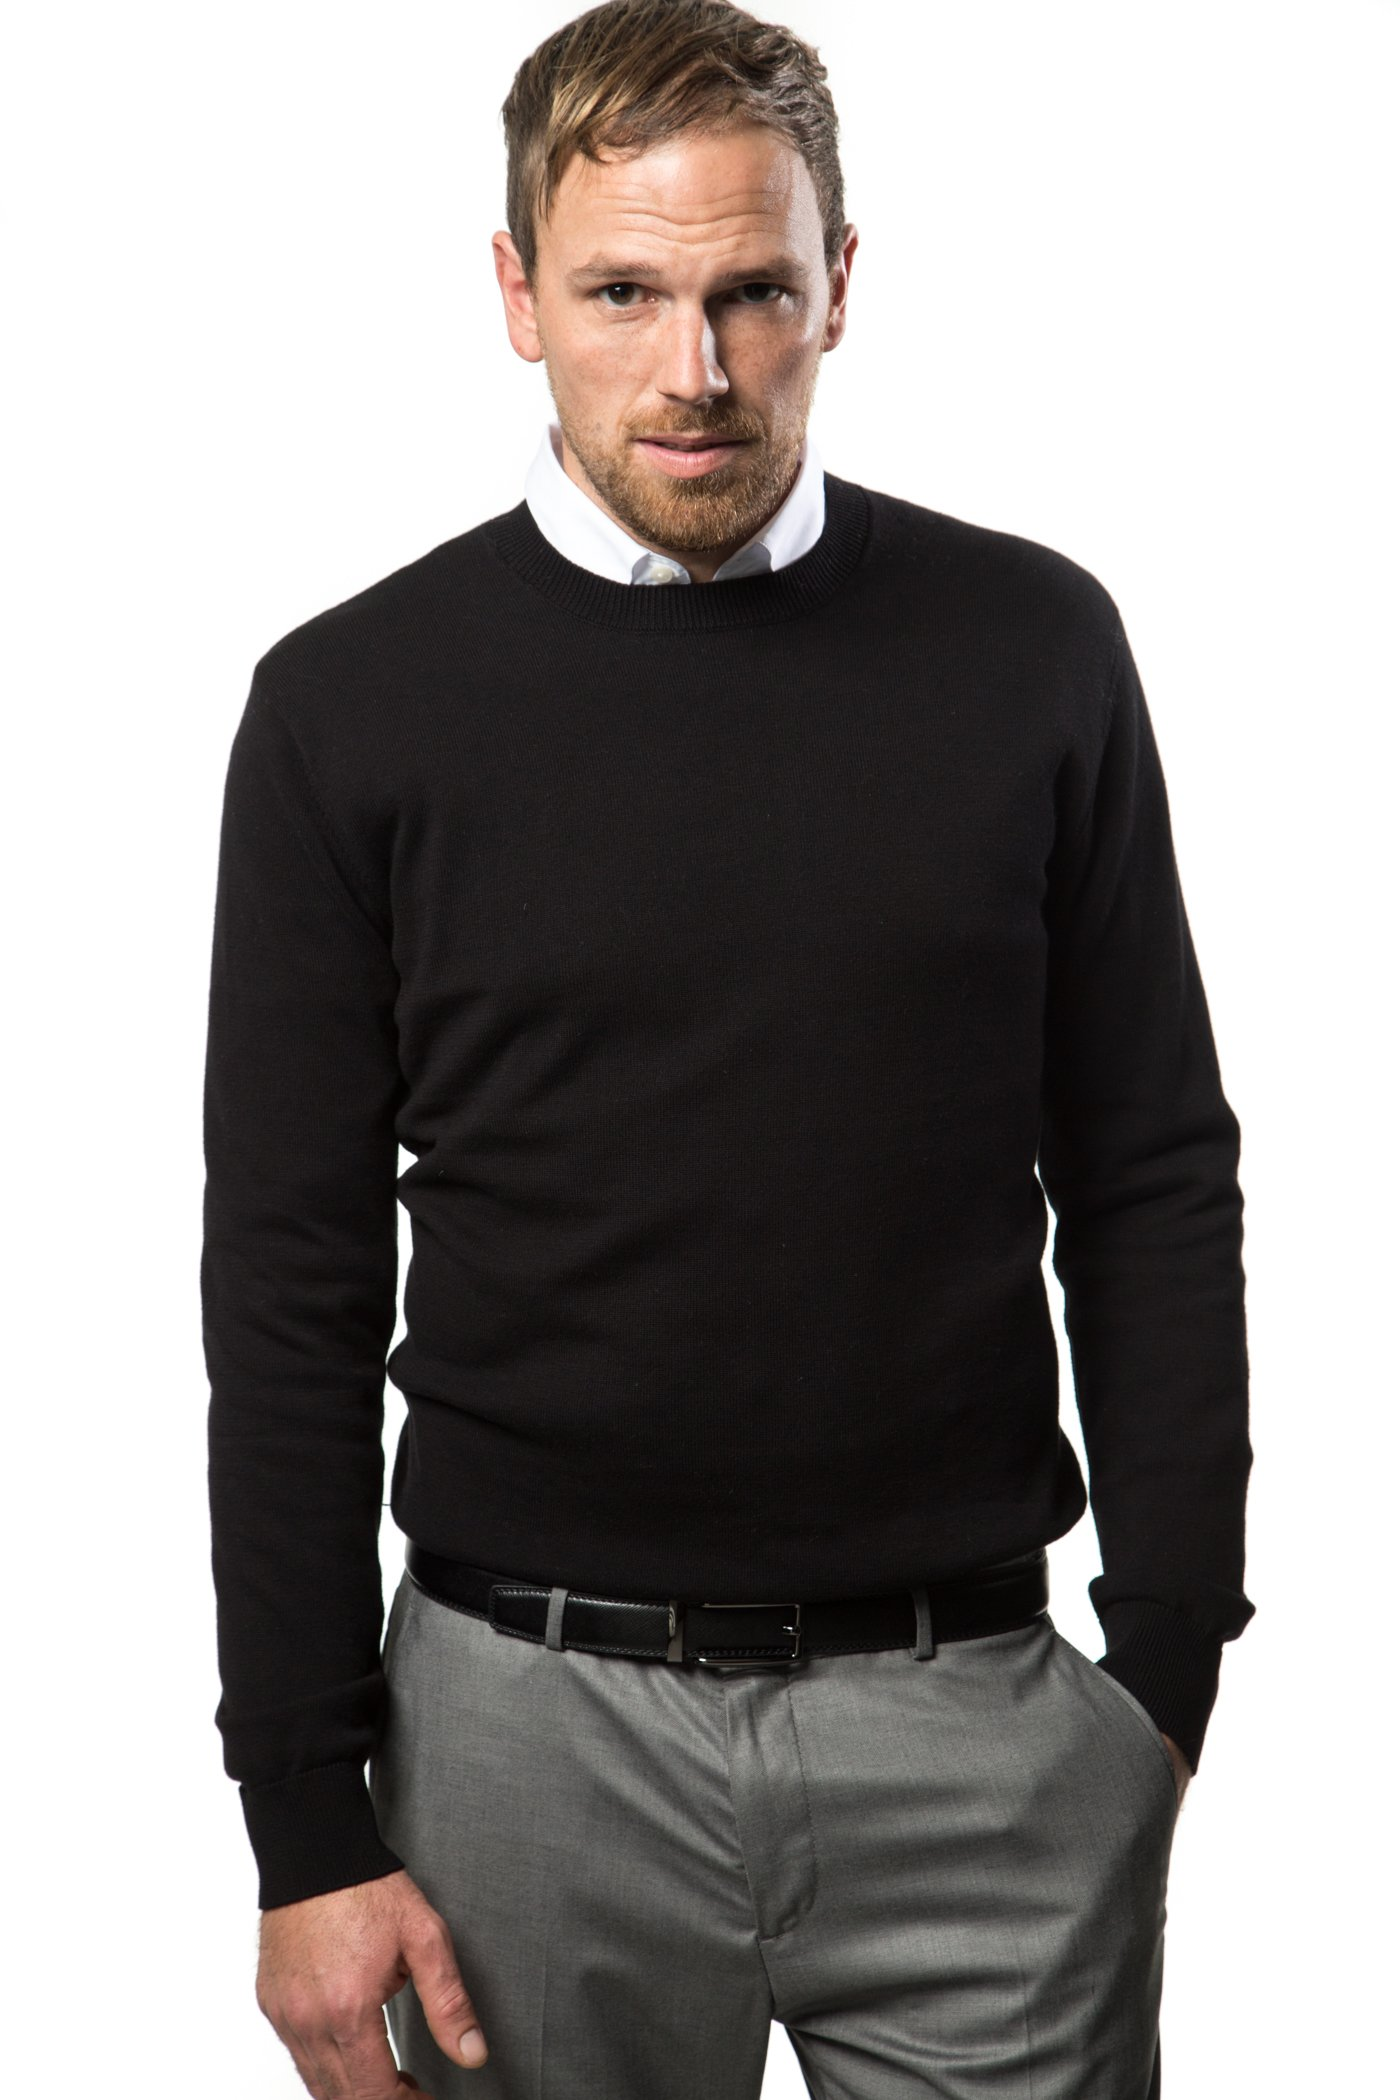 Mio Marino Cotton Sweaters For Men - Lightweight Crewneck Men's Pullover, Enclosed in an Elegant Gift Box - Black - Large